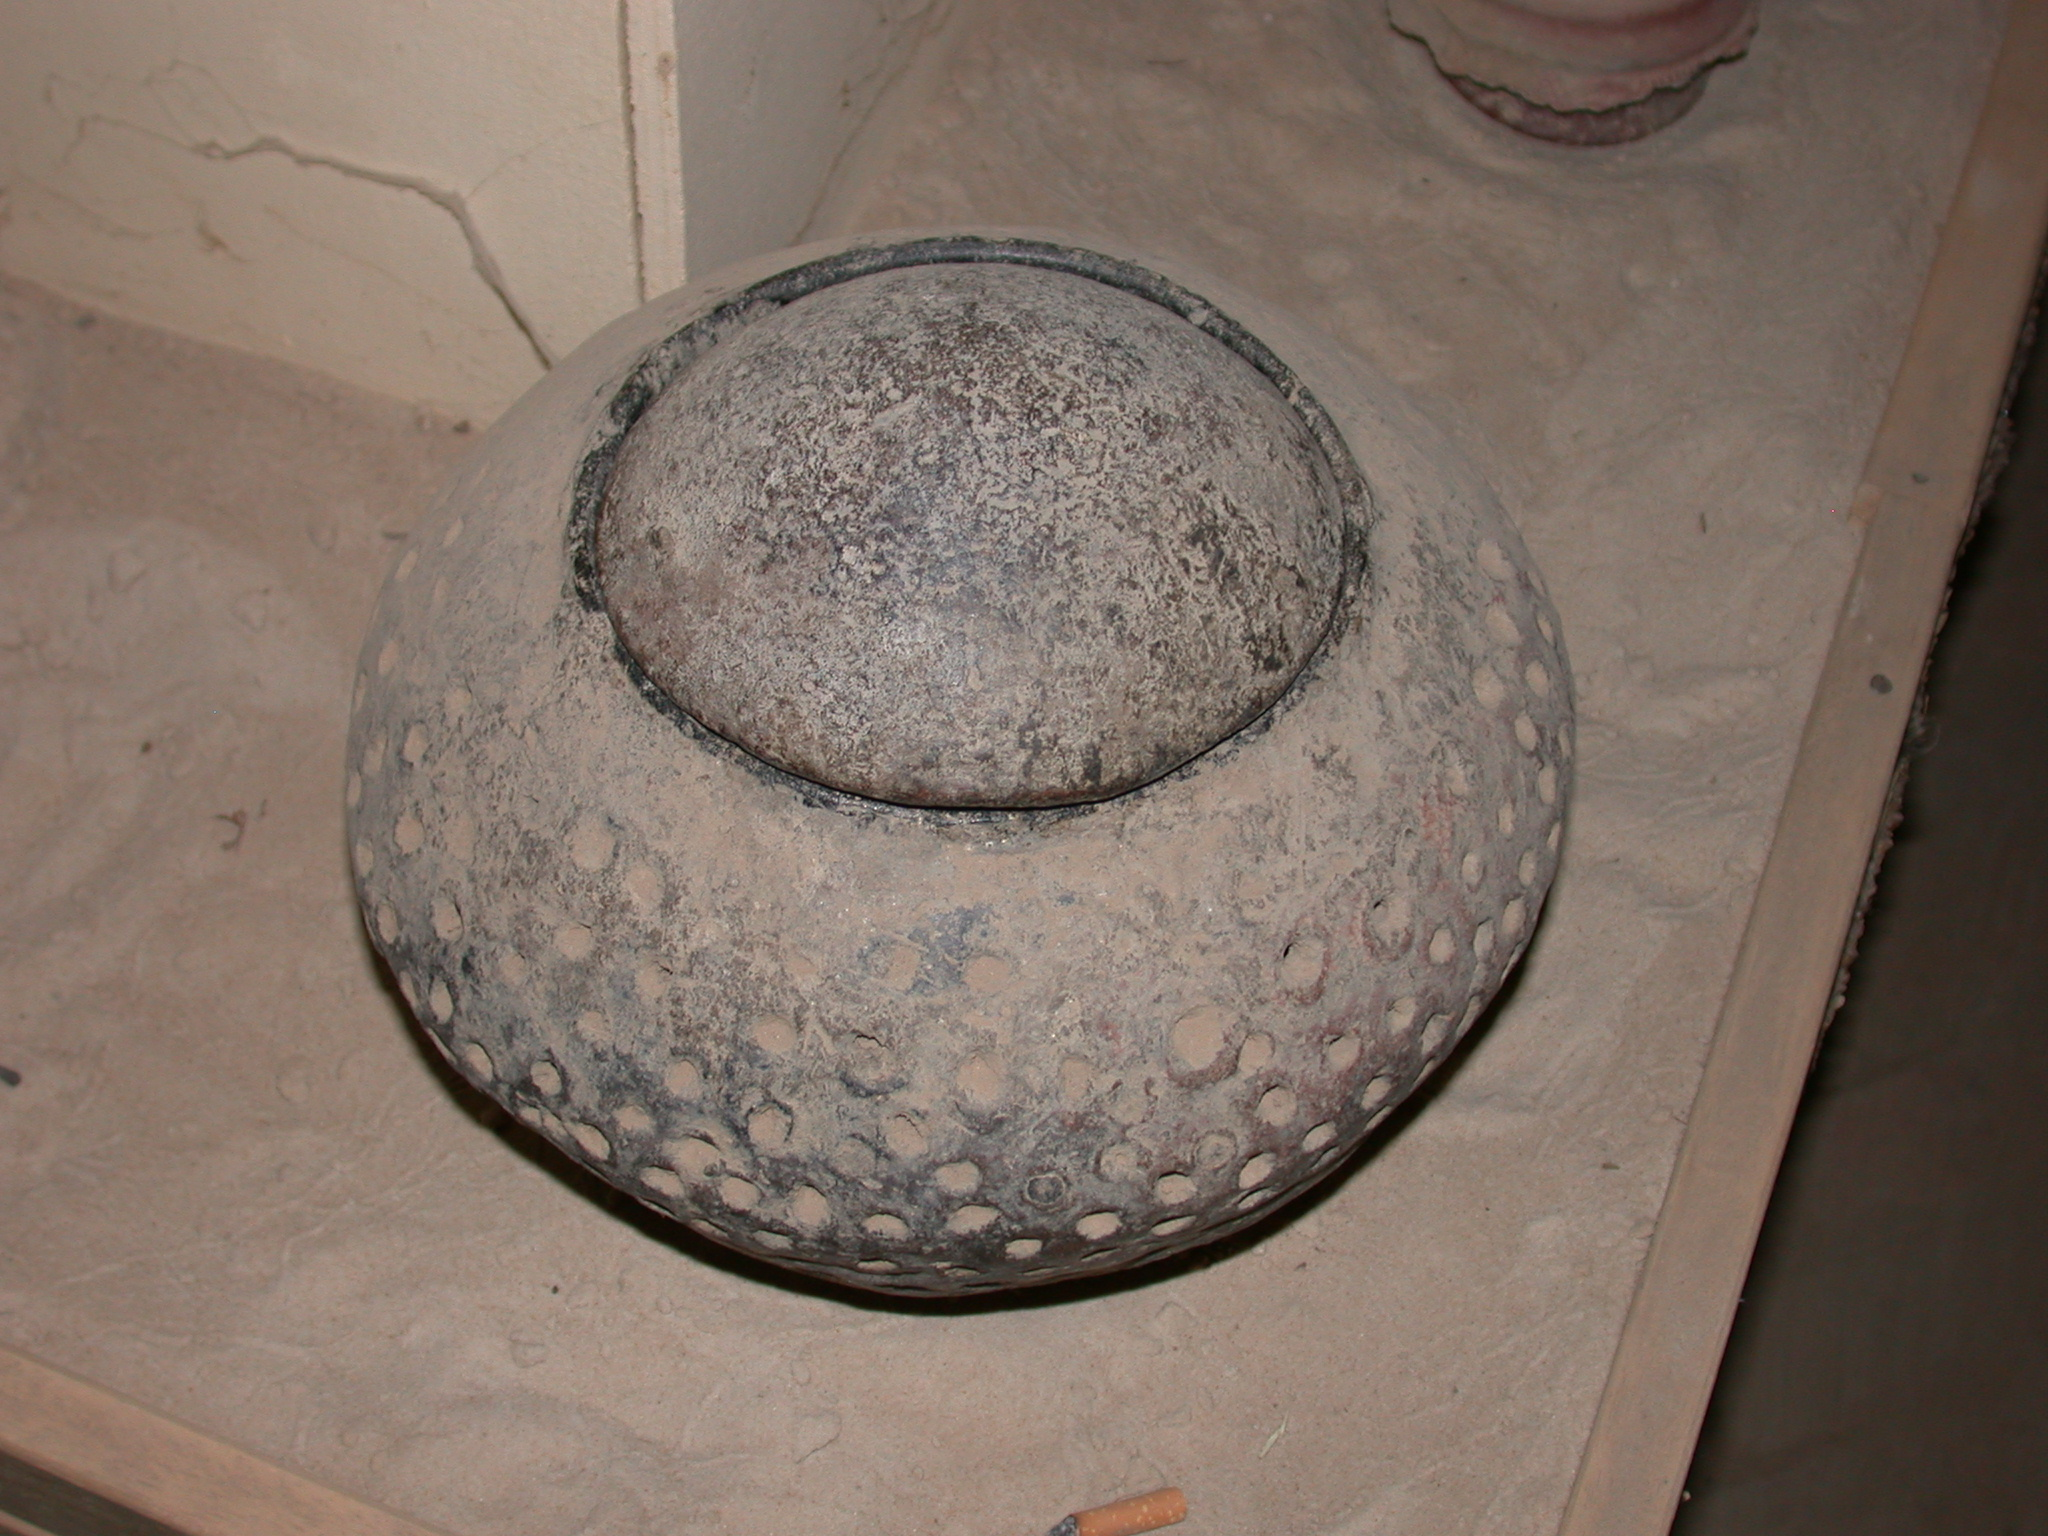 Labeled as Lamp or Incense Burner, Timbuktu Ethnological Museum, Timbuktu, Mali